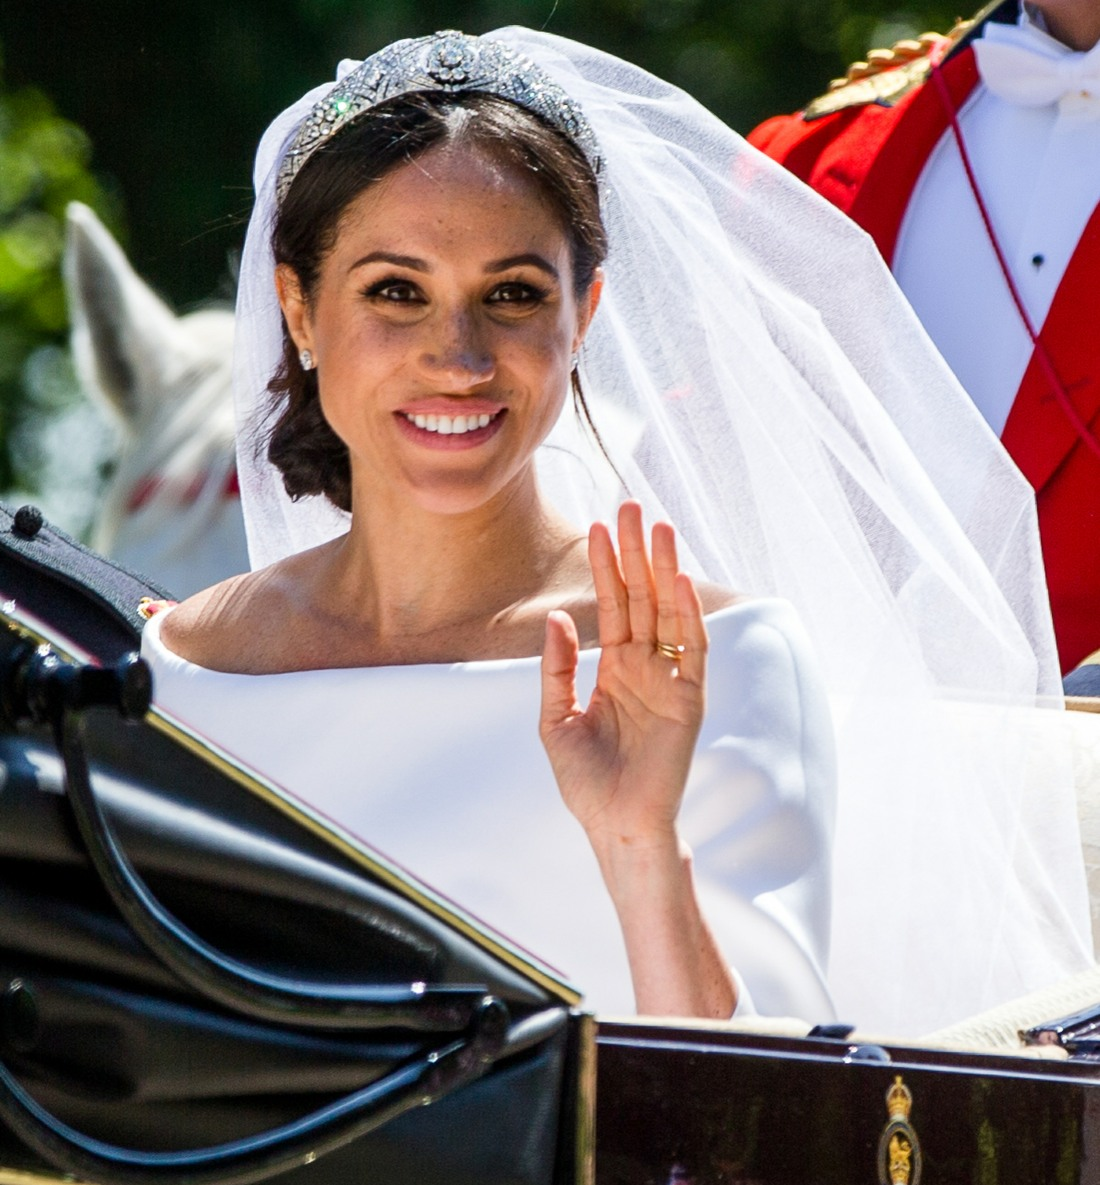 The Duchess of Sussex got her own Coat of Arms (and the Markle family did not)